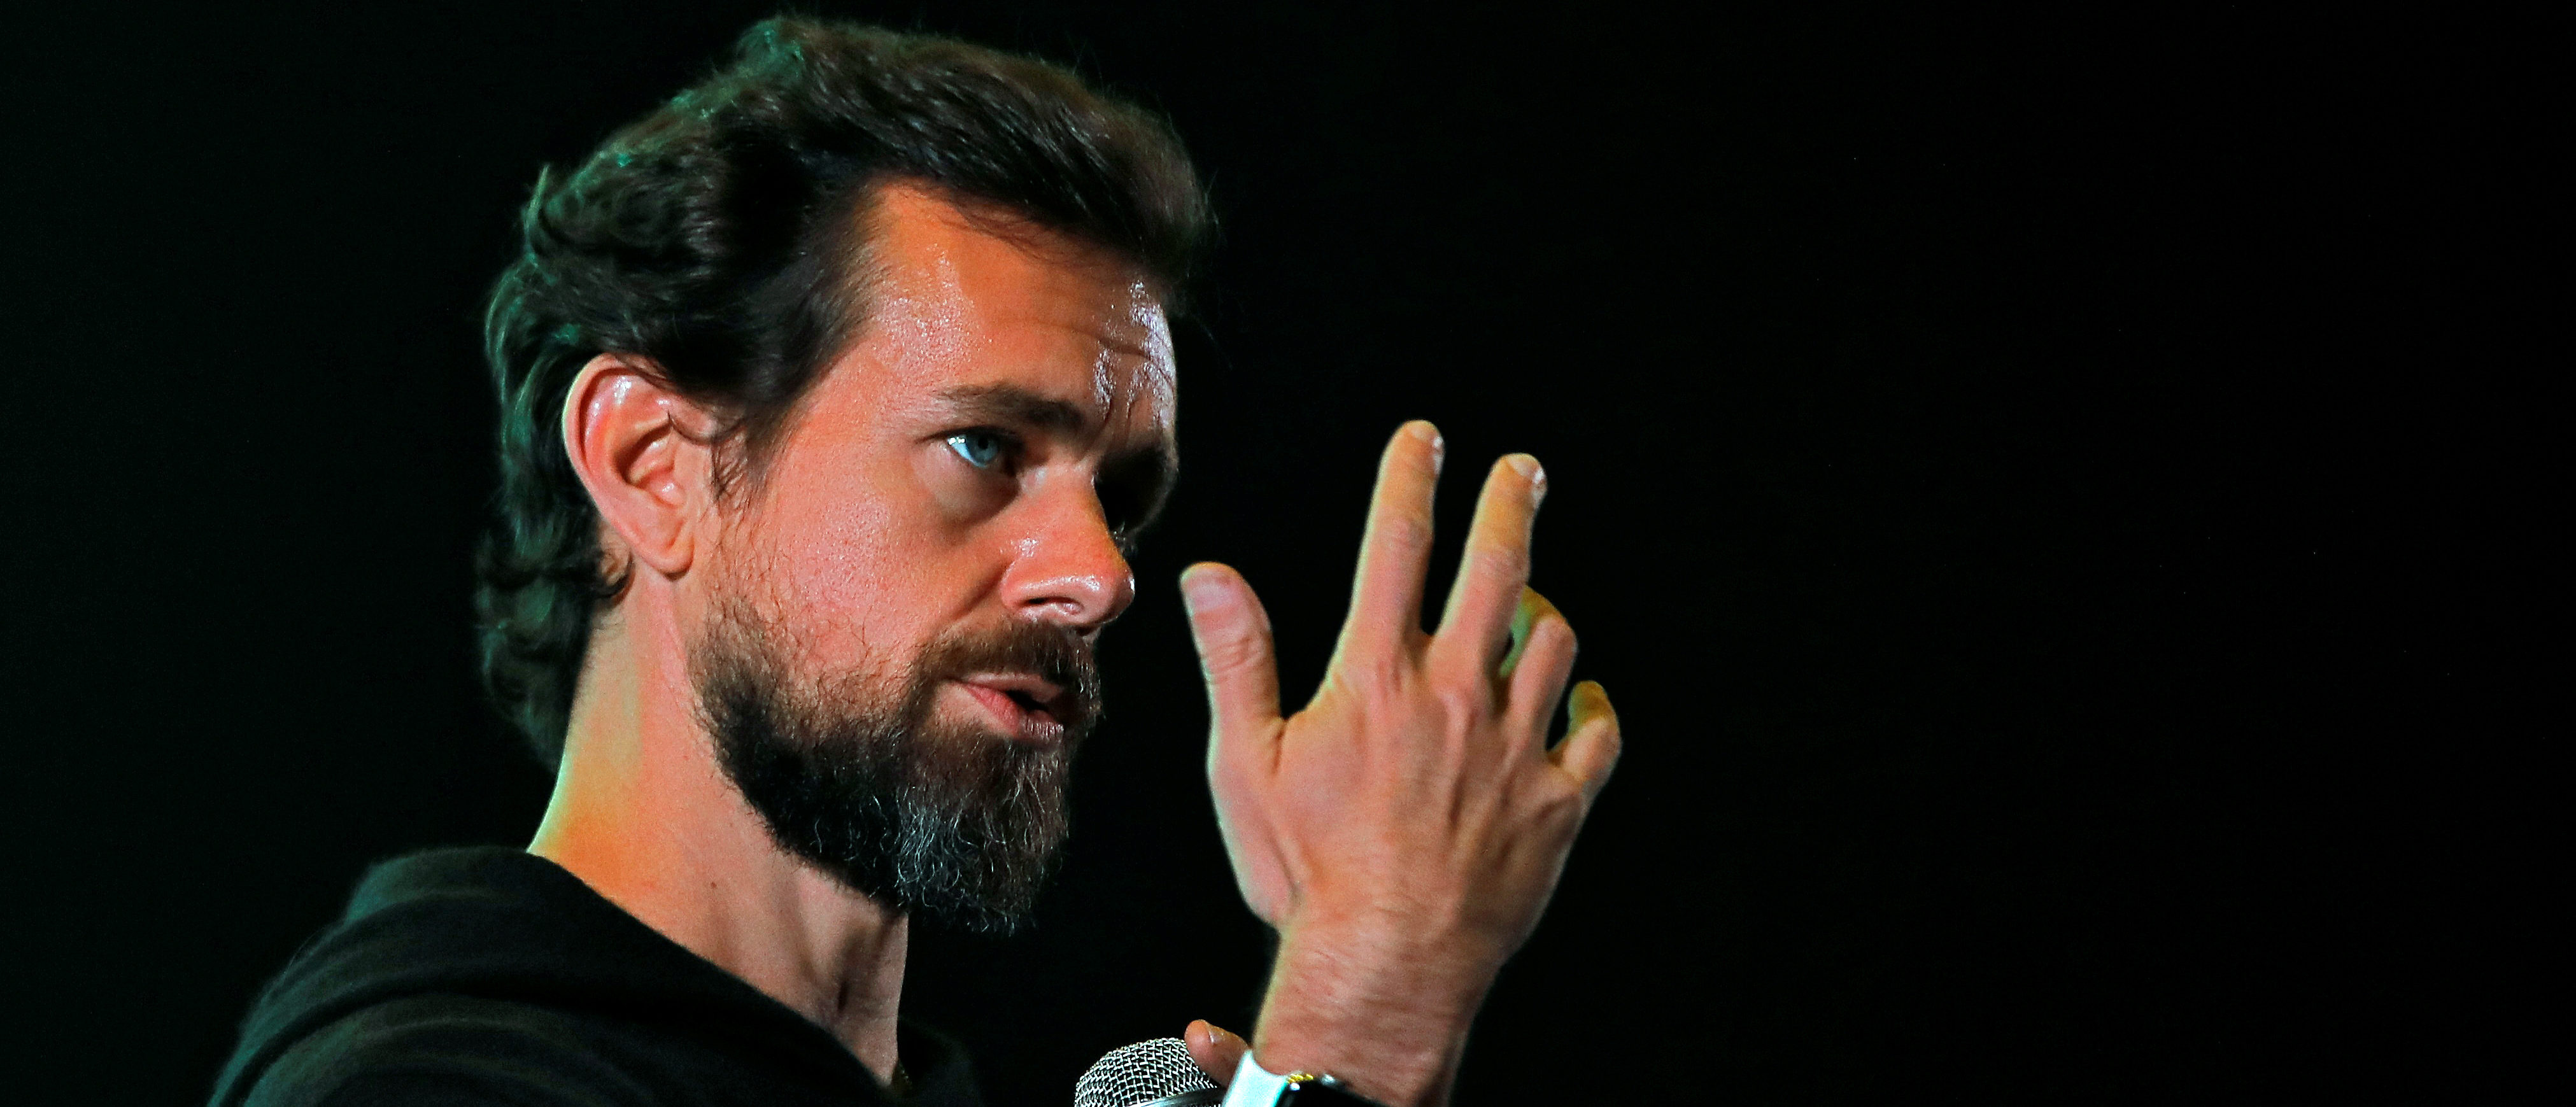 Twitter To Ban Political Advertising